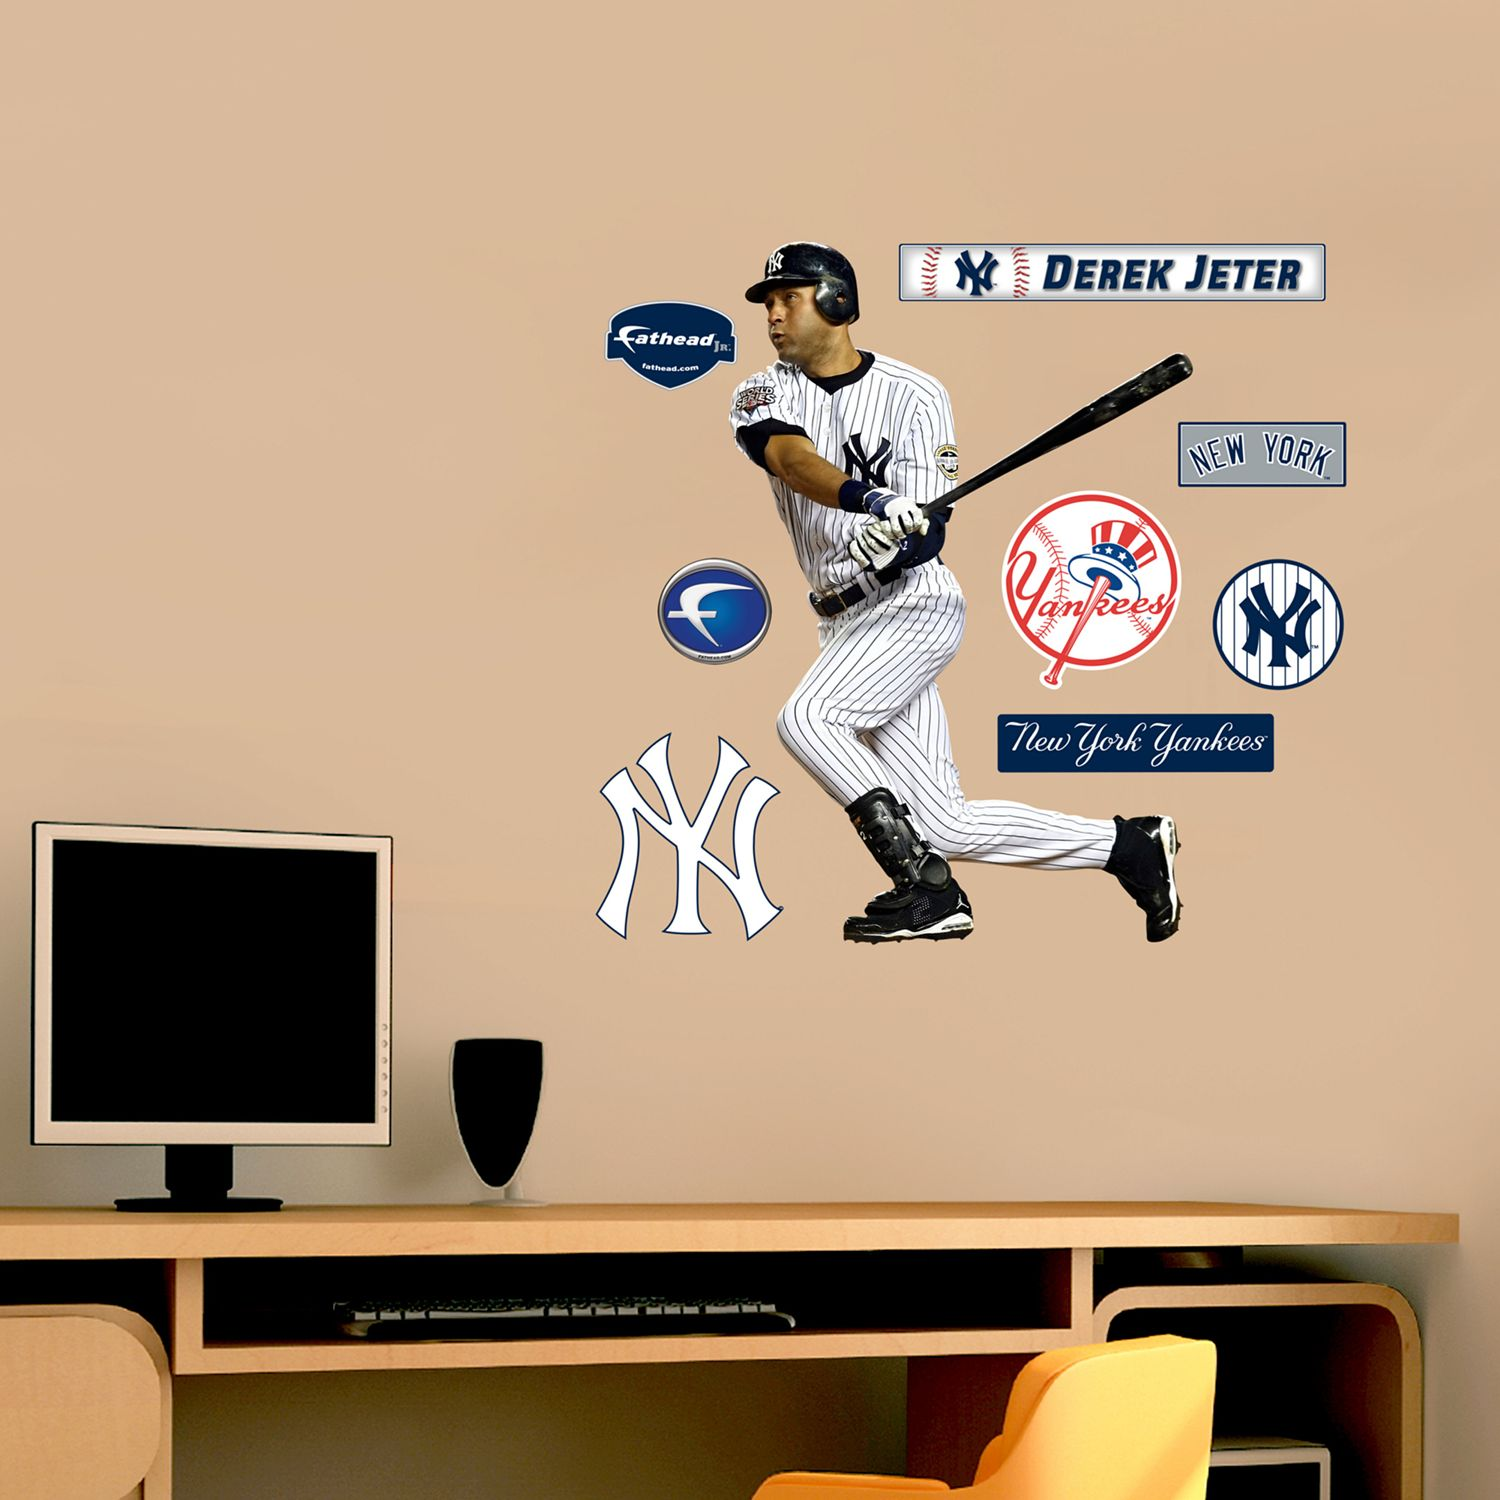 Fathead New York Yankees Derek Jeter Wall Decals Part 81